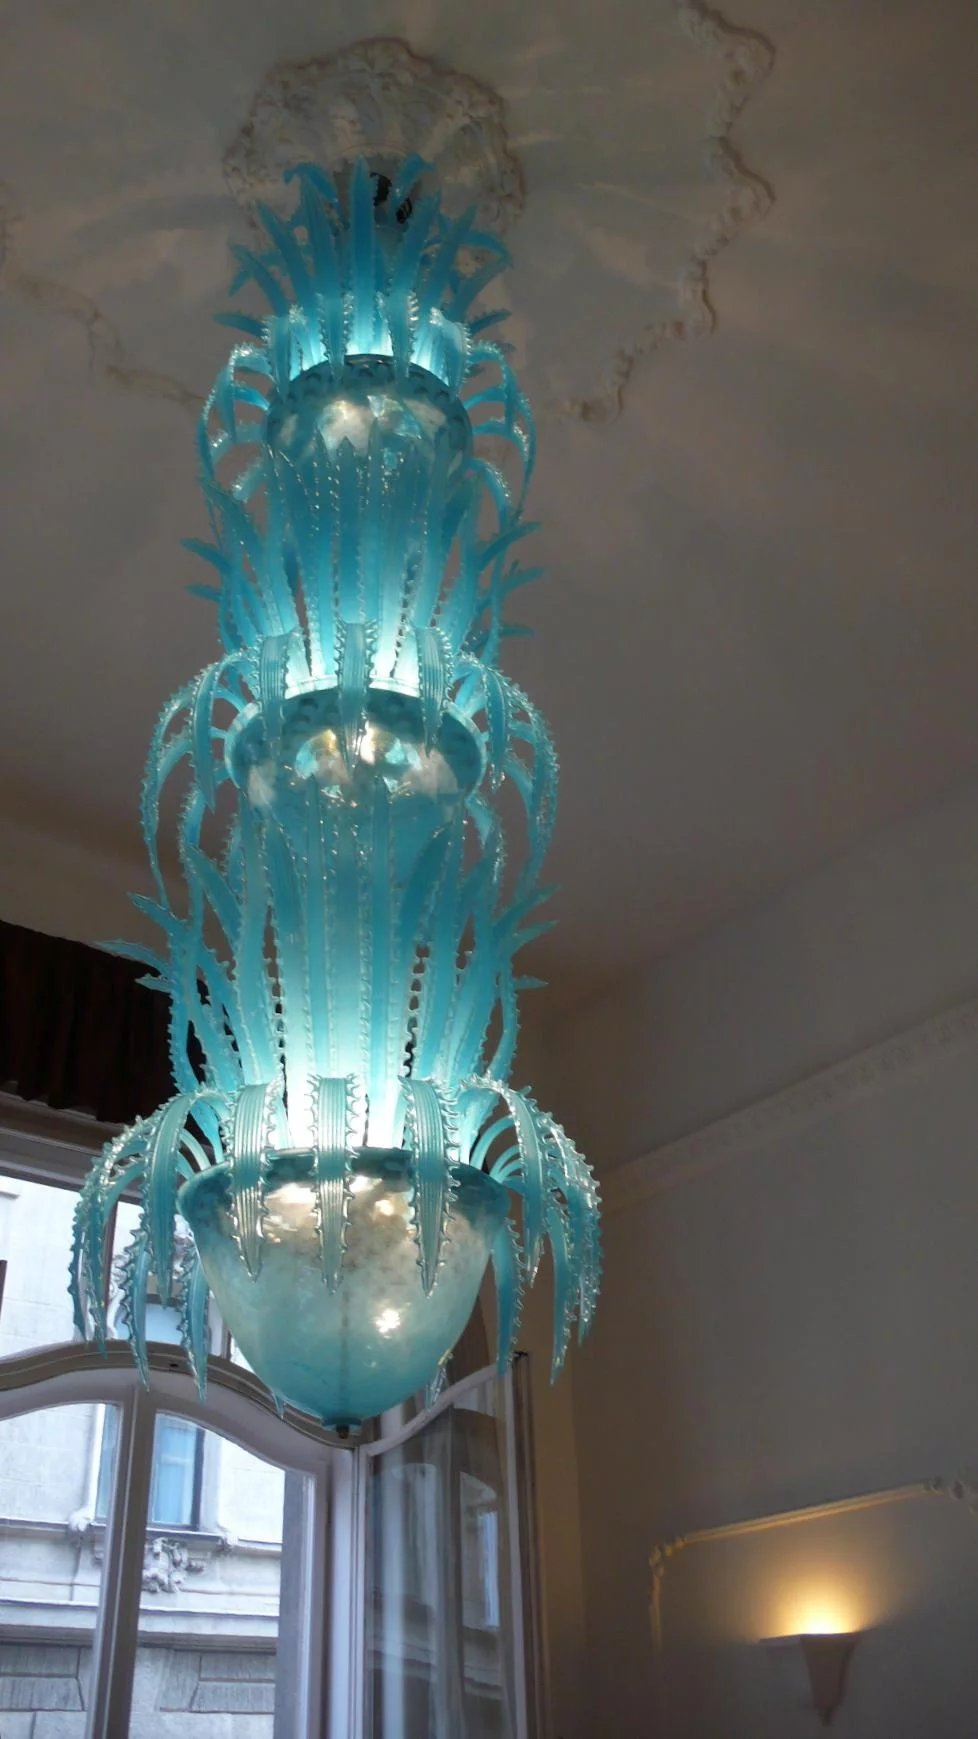 Imposing waterfall handblown glass chandelier by murano for Margutta 19 luxury hotel 00187 roma rm italy